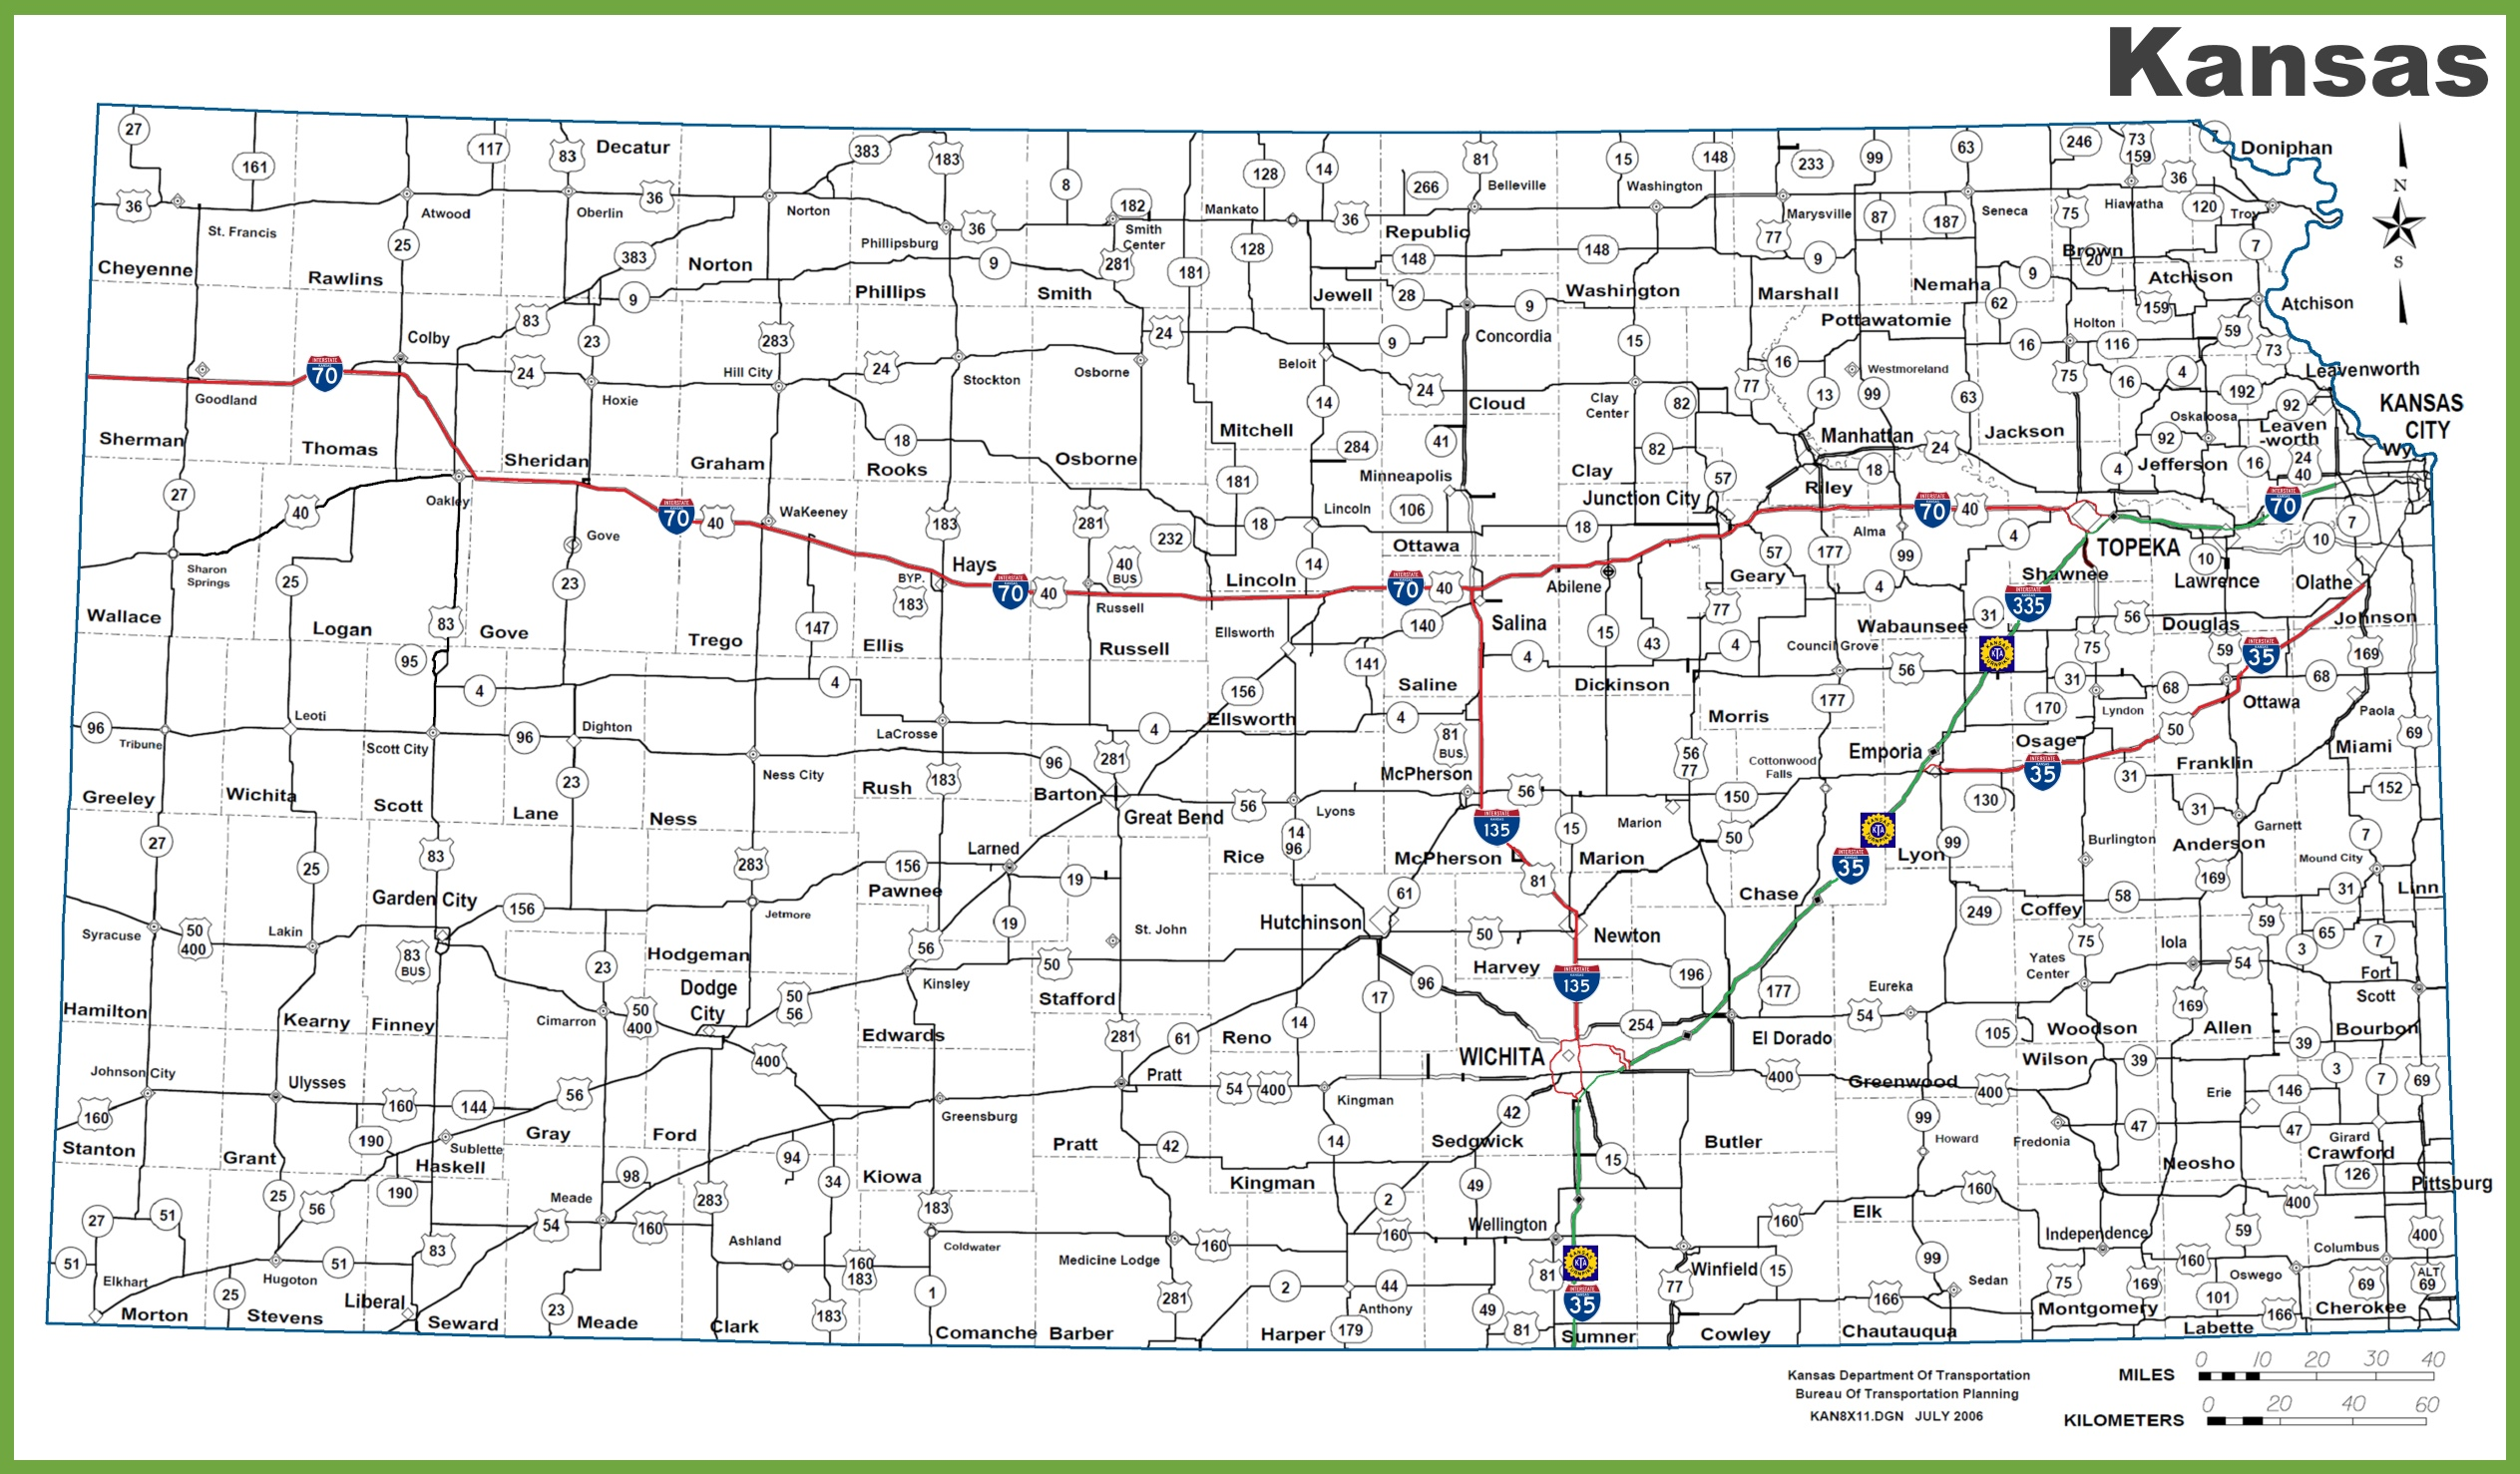 Kansas road map on map of kansas with towns, kansas major cities, kansas ghost towns map, google map of kansas towns, kansas to colorado, kansas counties and cities, kansas map with all cities, kansas map with rivers, western washington state map with cities and towns, kansas cities and towns list, kansas towns beginning with s, missouri counties map with towns, kansas and colorado map, map of ohio with cities and towns, kansas map with counties shown, kansas counties and county seats, kansas map showing cities, wyoming cities and towns, kansas largest cities, kansas map with counties printable,